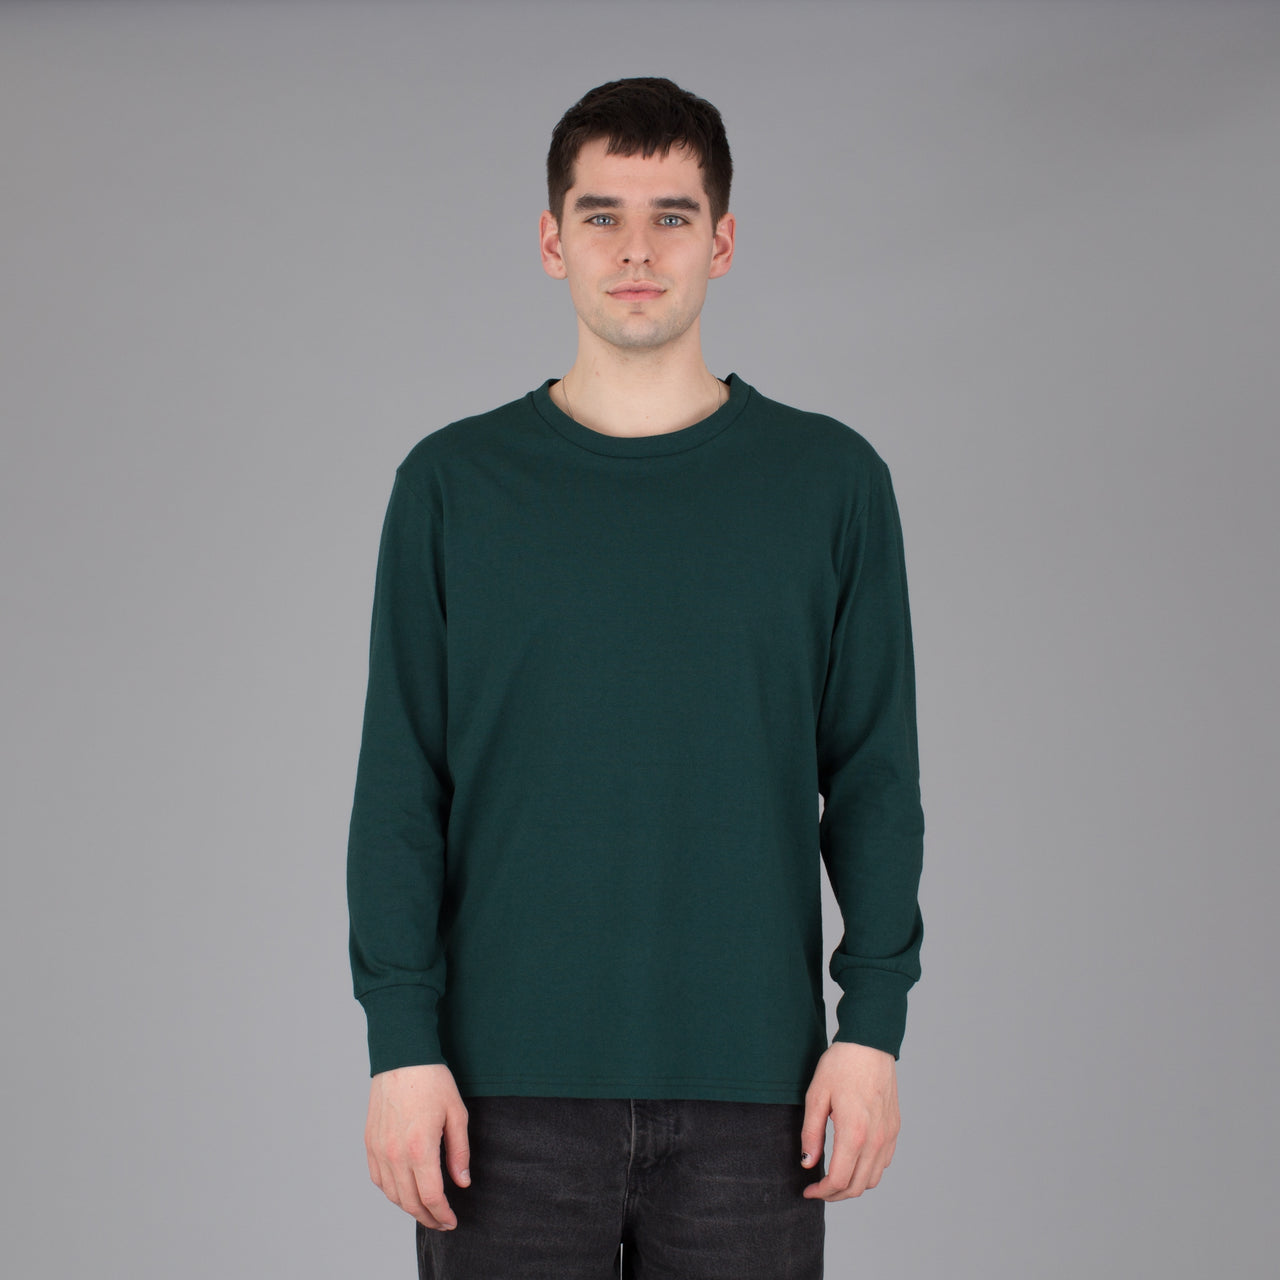 Current Fit Carded Cotton Long Sleeve - Emerald